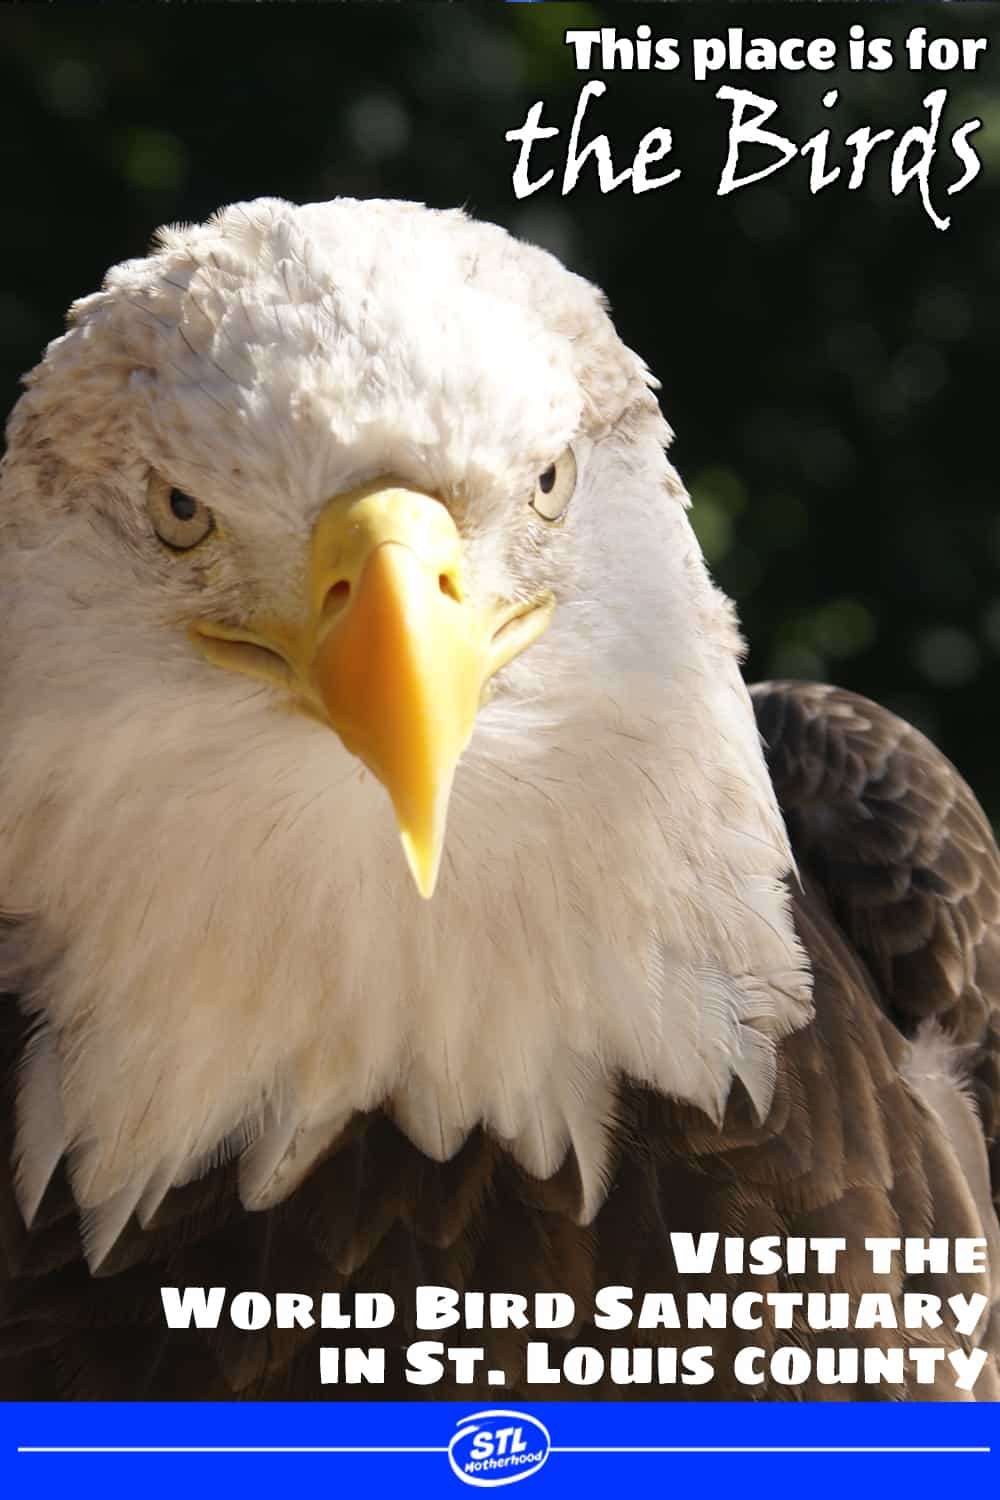 bald eagle looking right at you